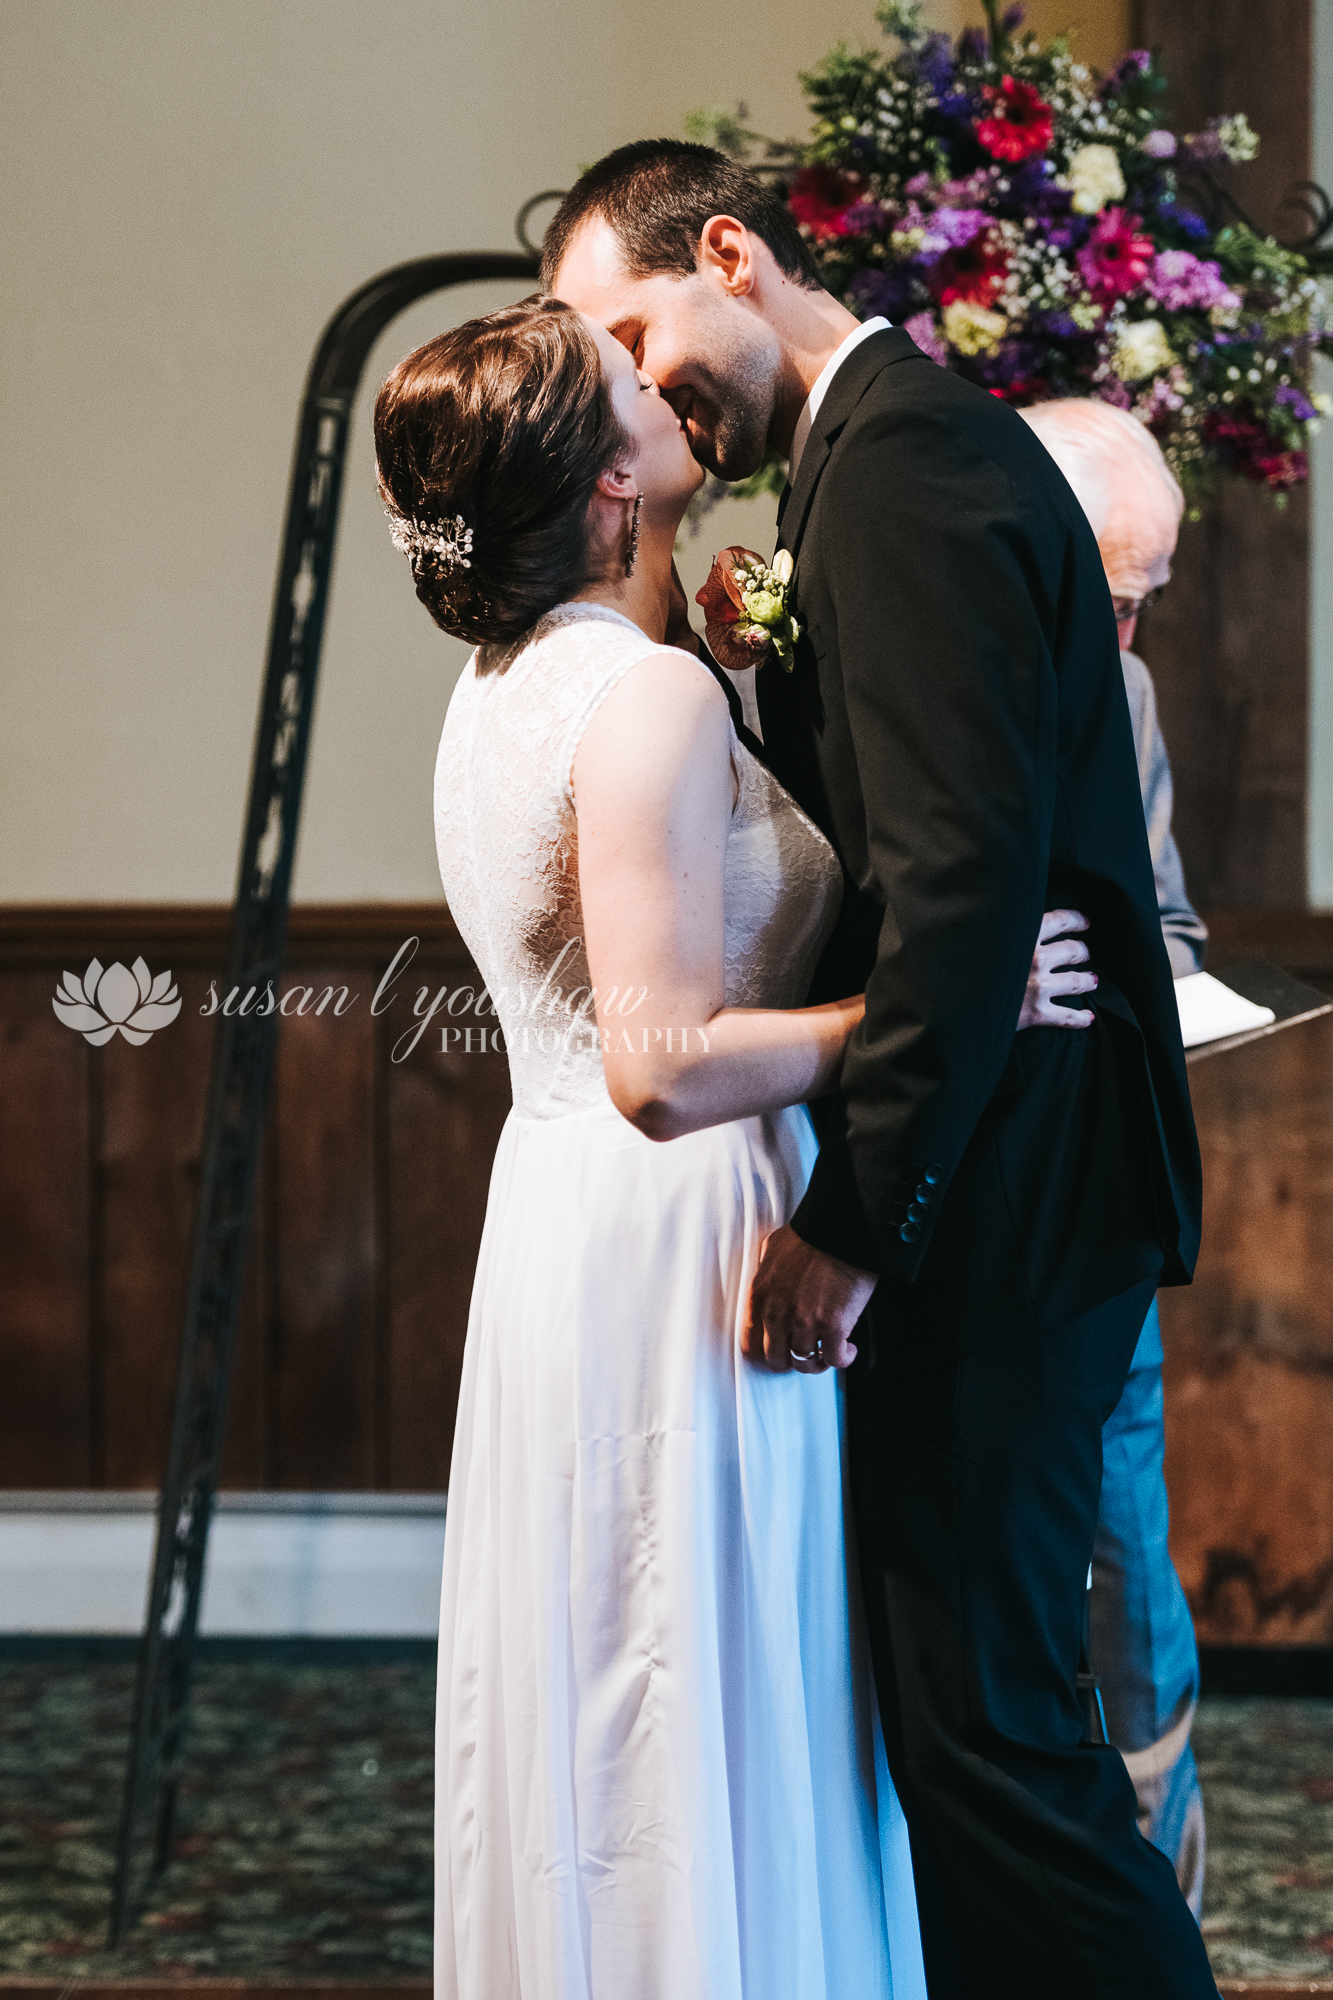 Adena and  Erik Wedding 05-17-2019 SLY Photography-93.jpg